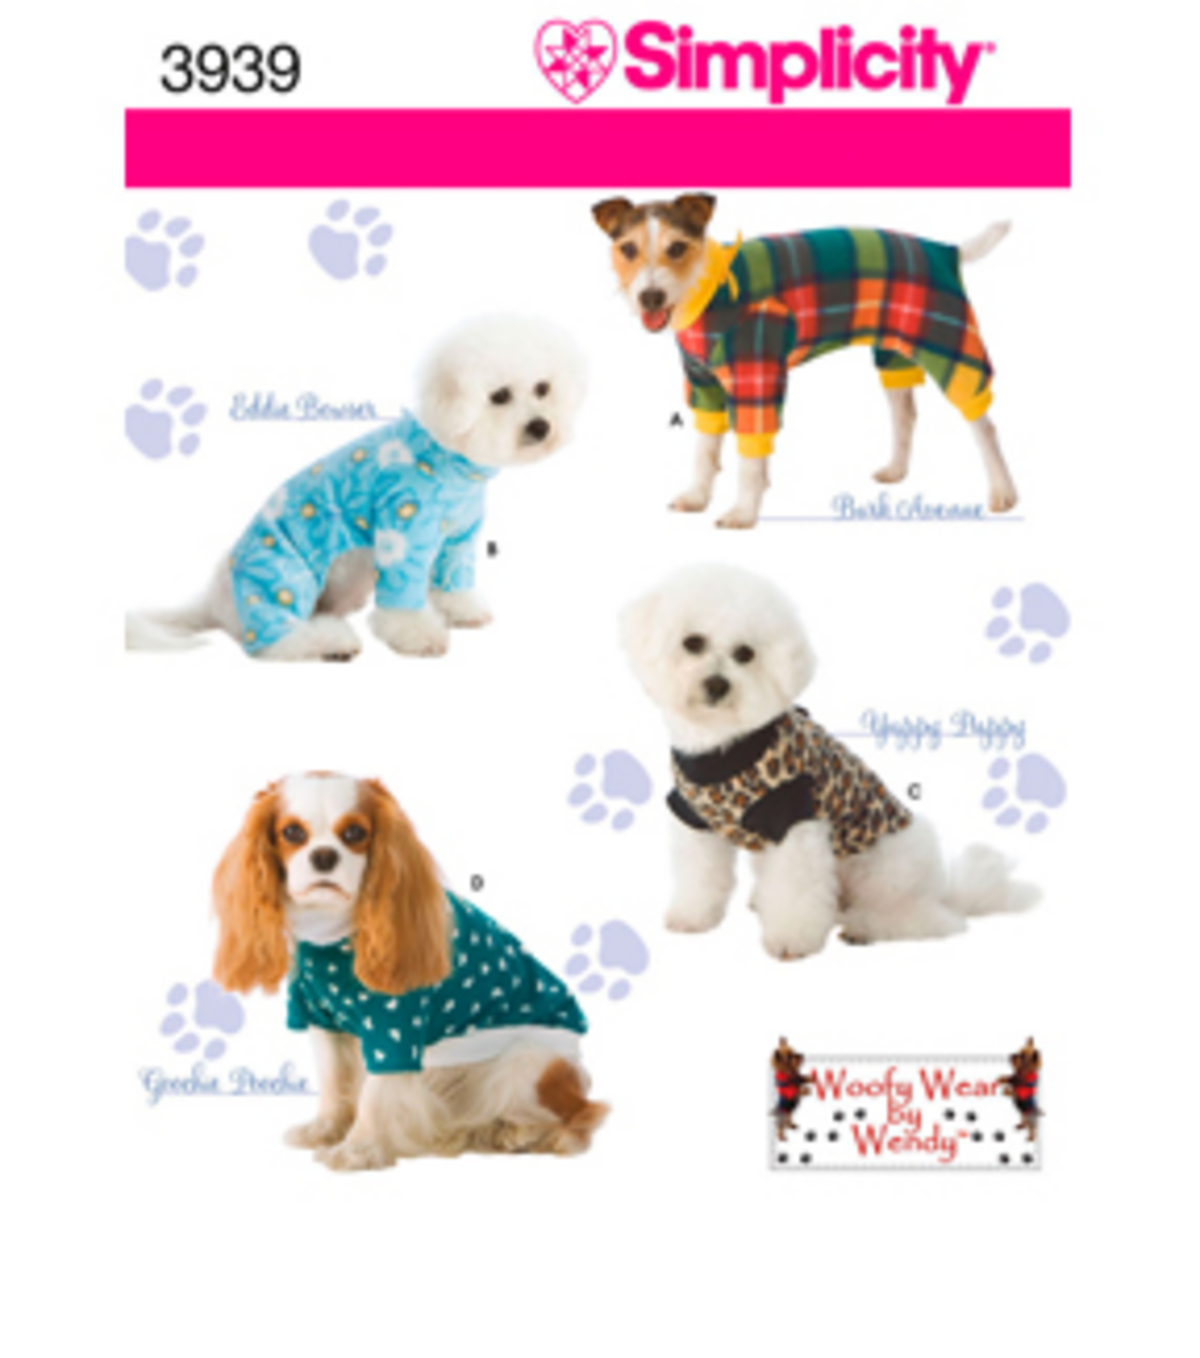 Simplicity pattern 3939 dog clothesin three sz sml joann simplicity pattern 3939a s m l simplicit jeuxipadfo Images